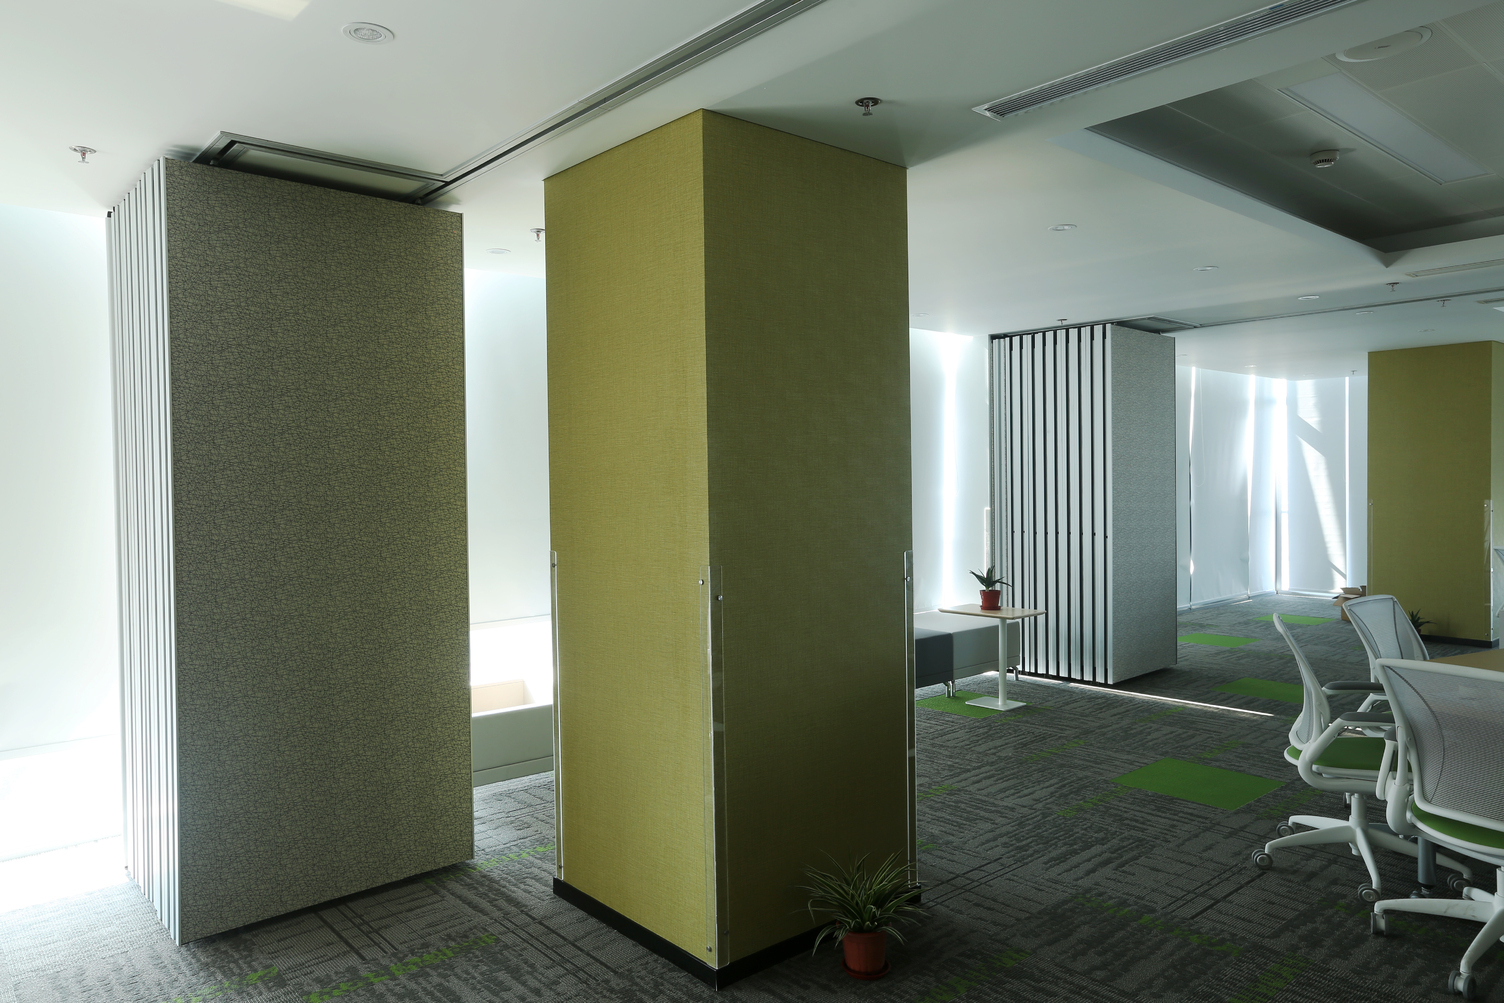 Wall protective film helps maintain the interior aesthetic of the space while showcasing the original design. DuPont™ Tedlar™ Wallcoverings ensures there is a long-lasting first impression.